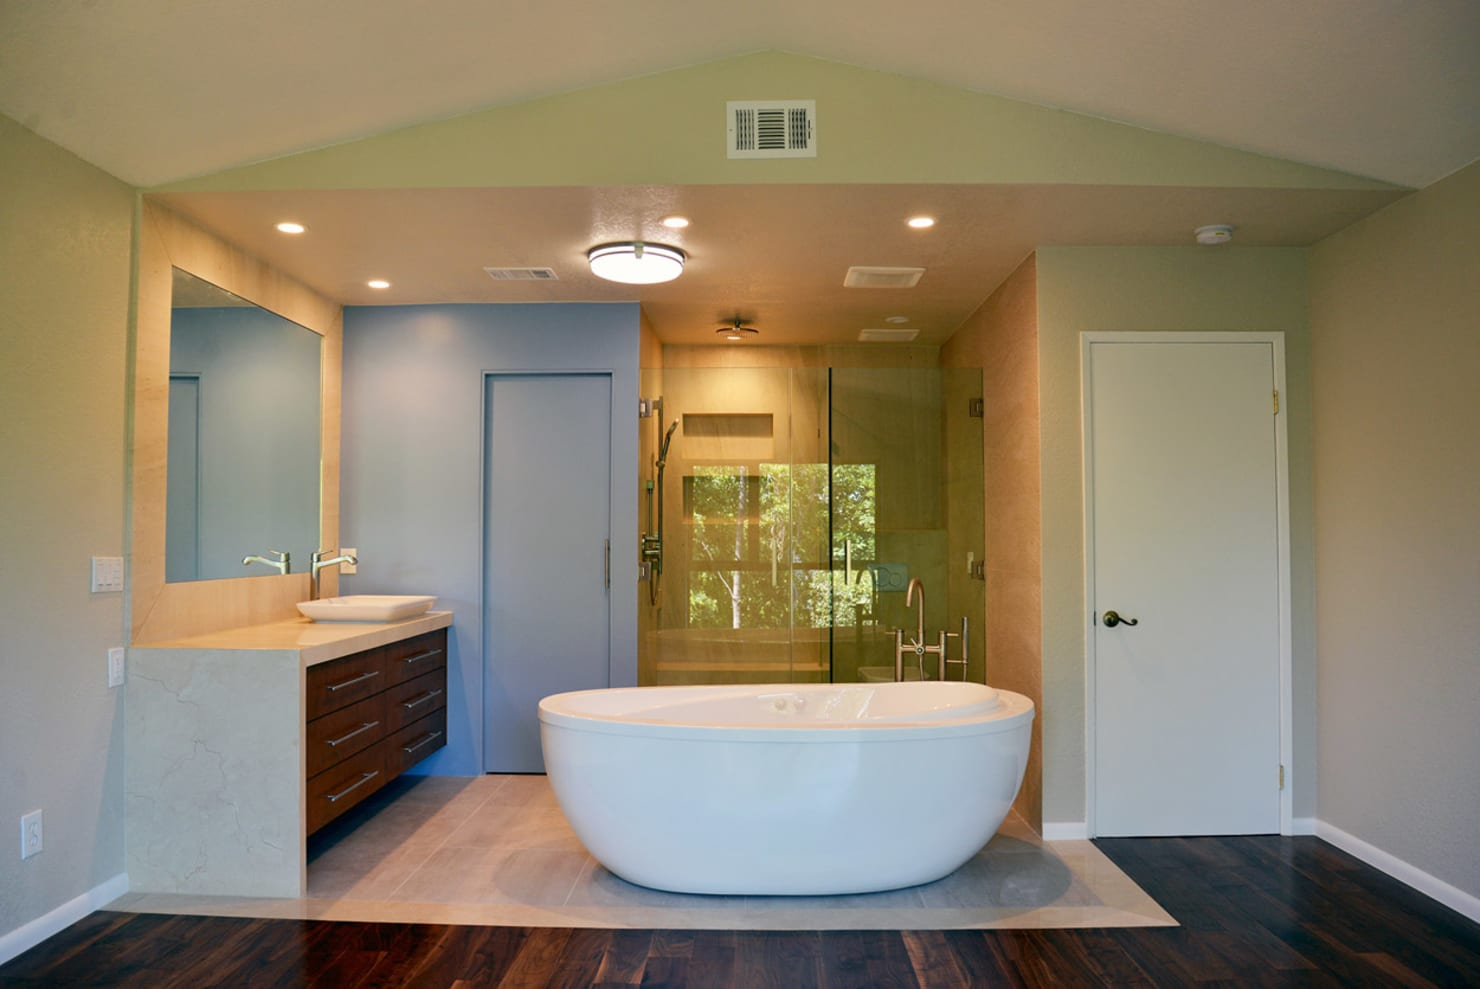 A detailed look at what makes this bathroom great